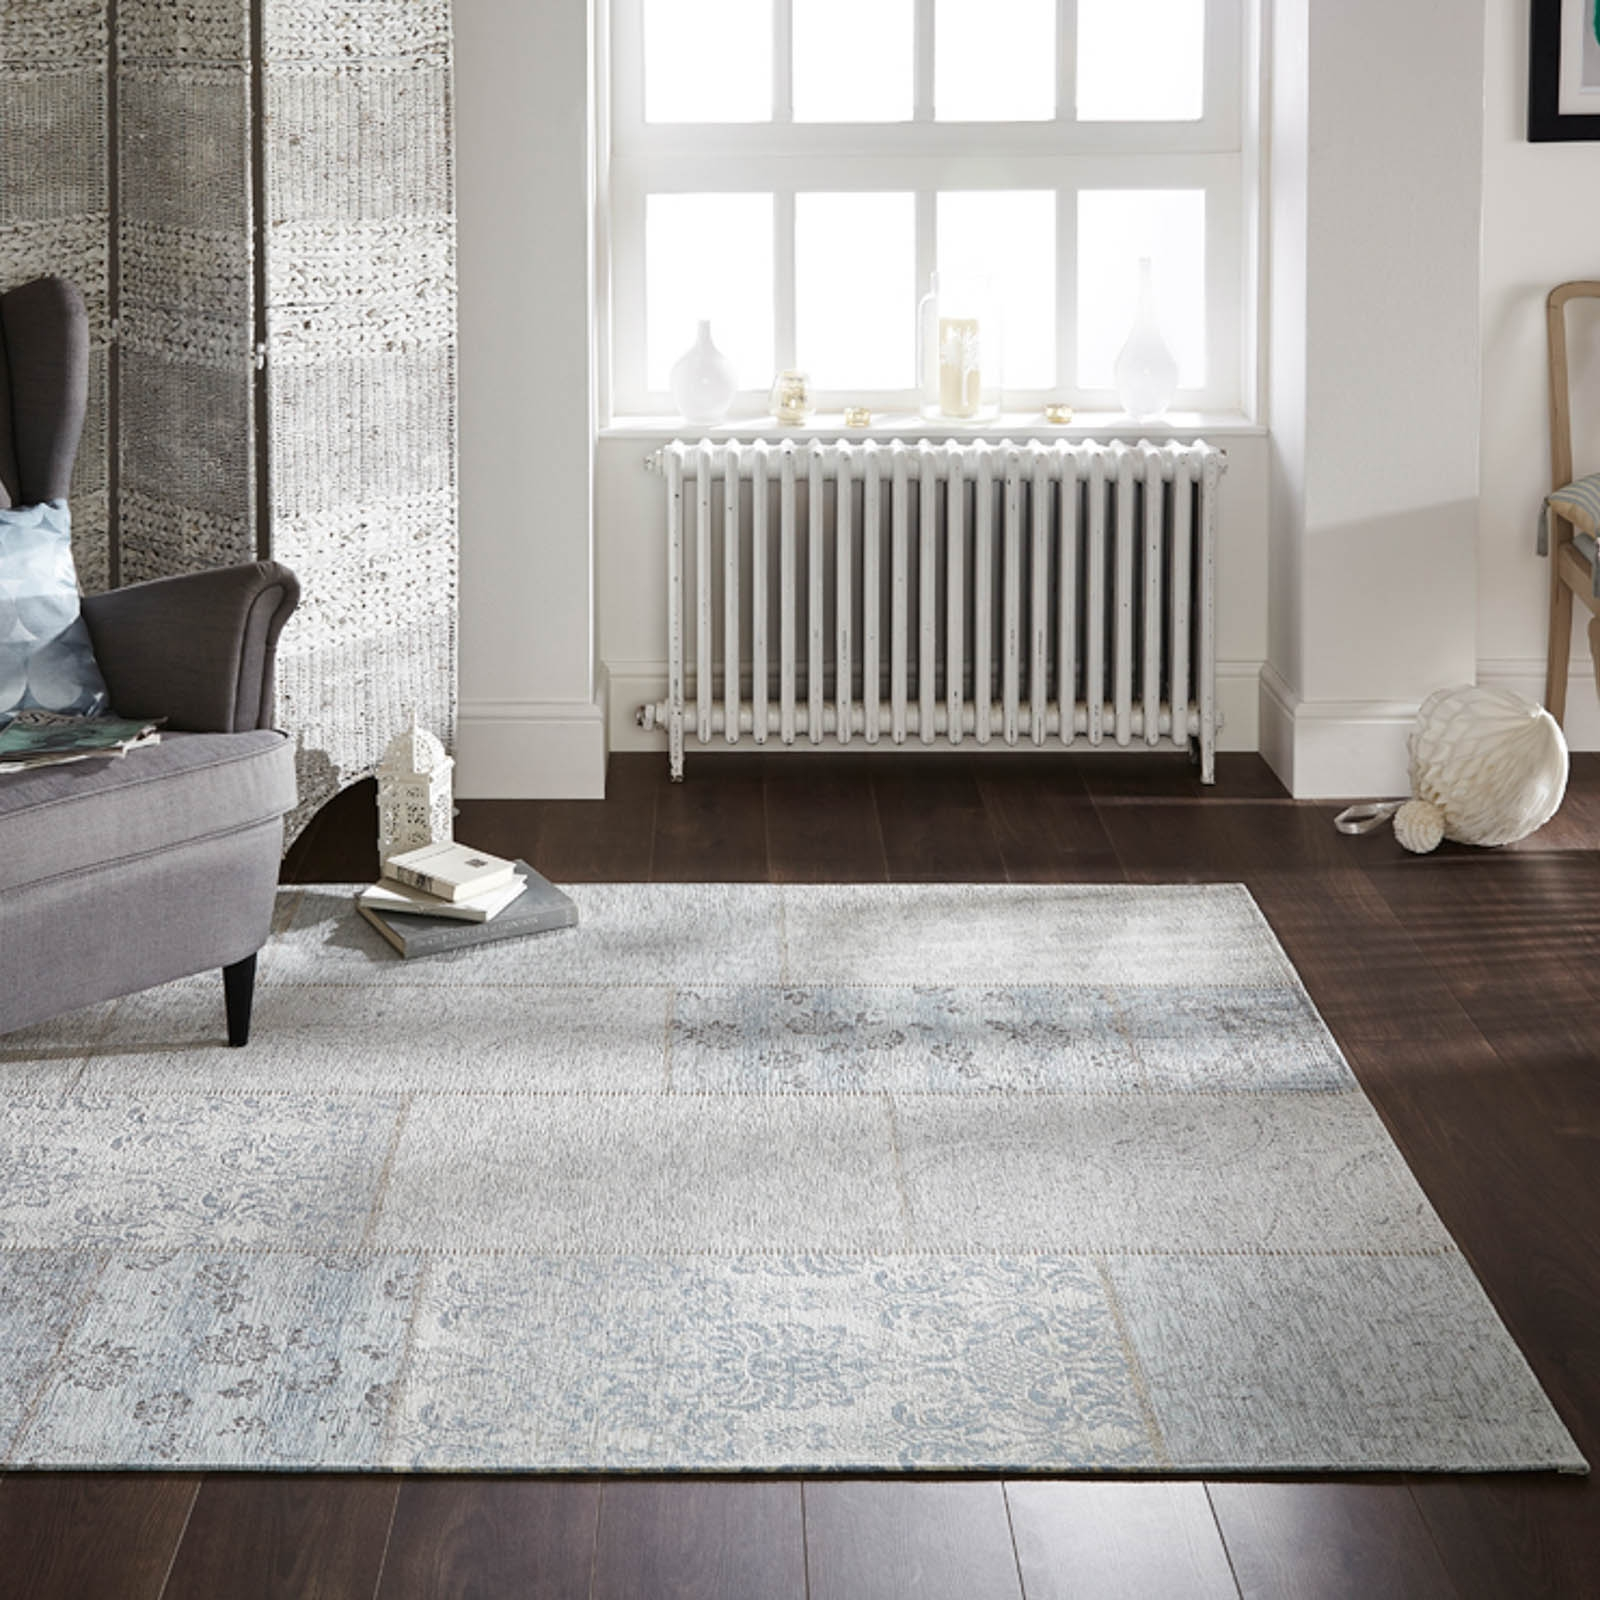 Manhattan Patchwork Chenille Rugs In Duck Egg Free Uk Delivery For Duck Egg Rugs (Image 8 of 15)